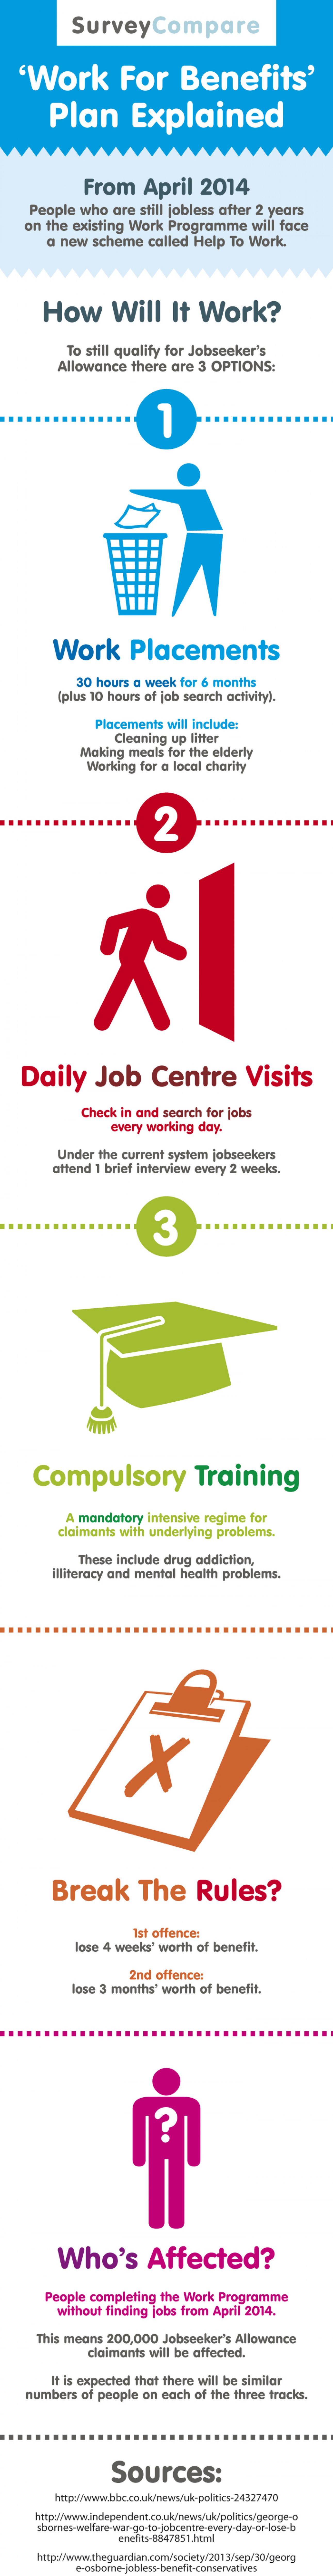 ' Work for Benefits' Plan Explained  Infographic